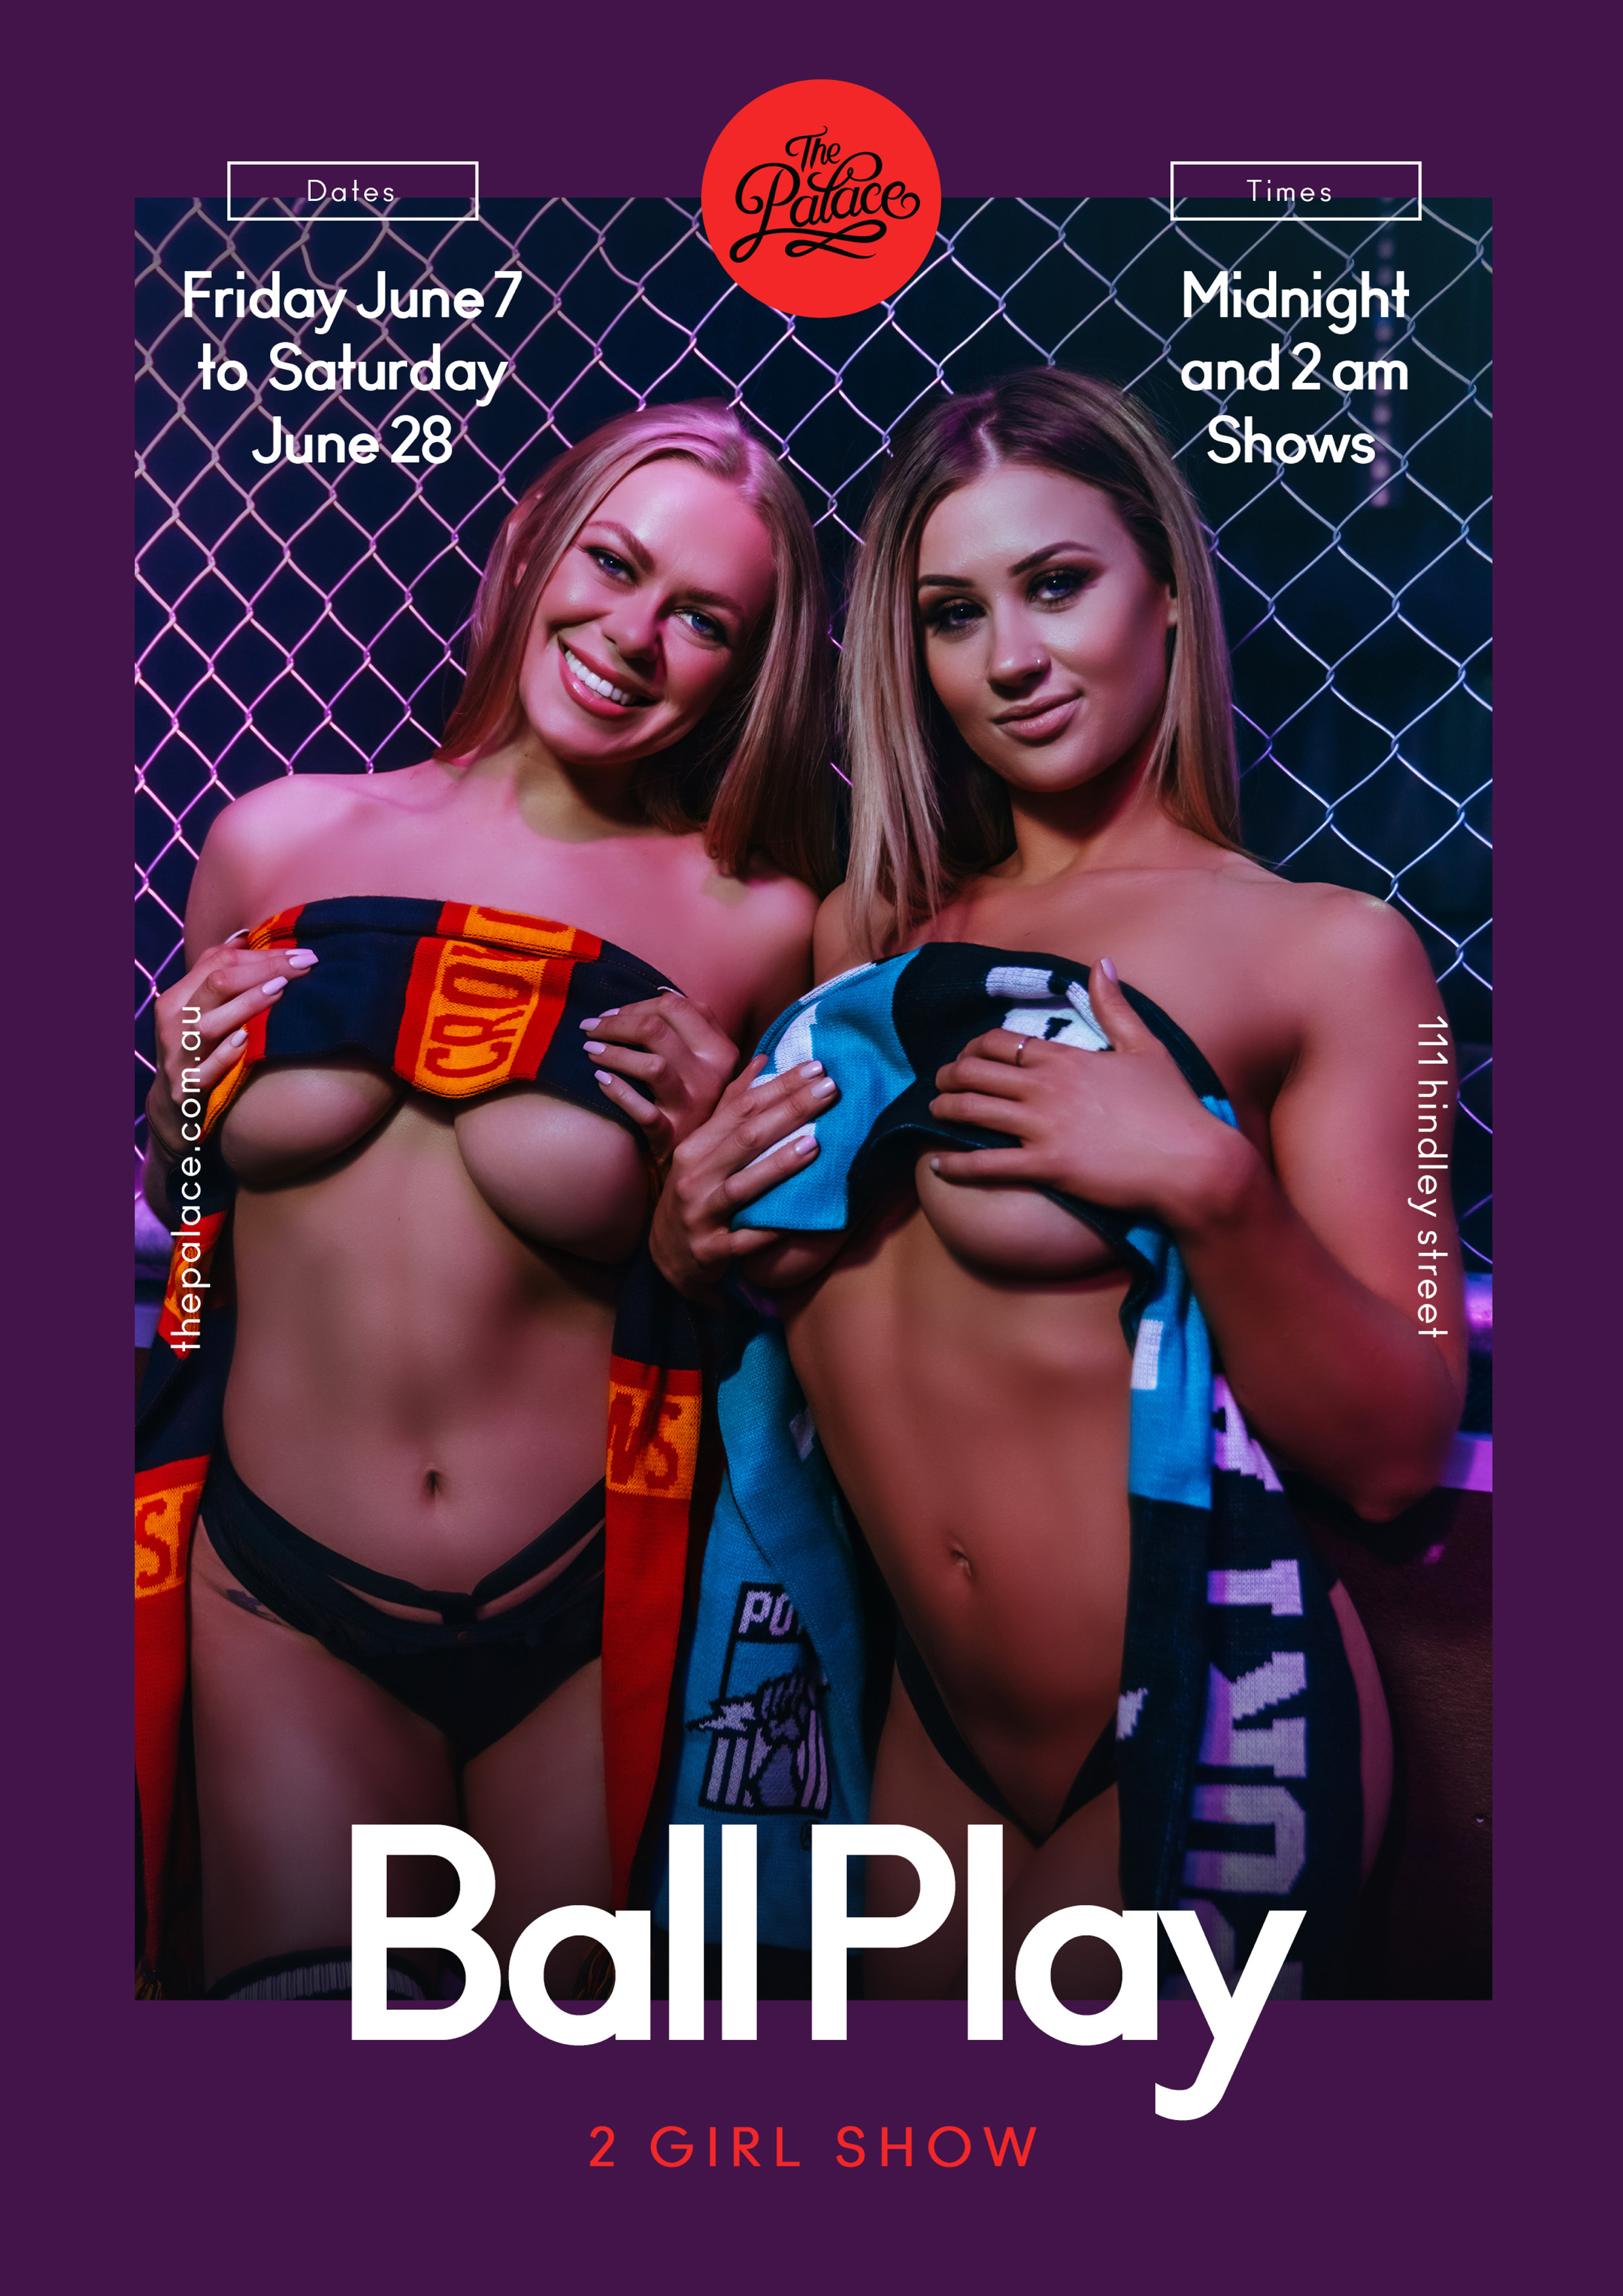 Ball Play - The Palace Adelaide, 111 Hindley St, Adelaide